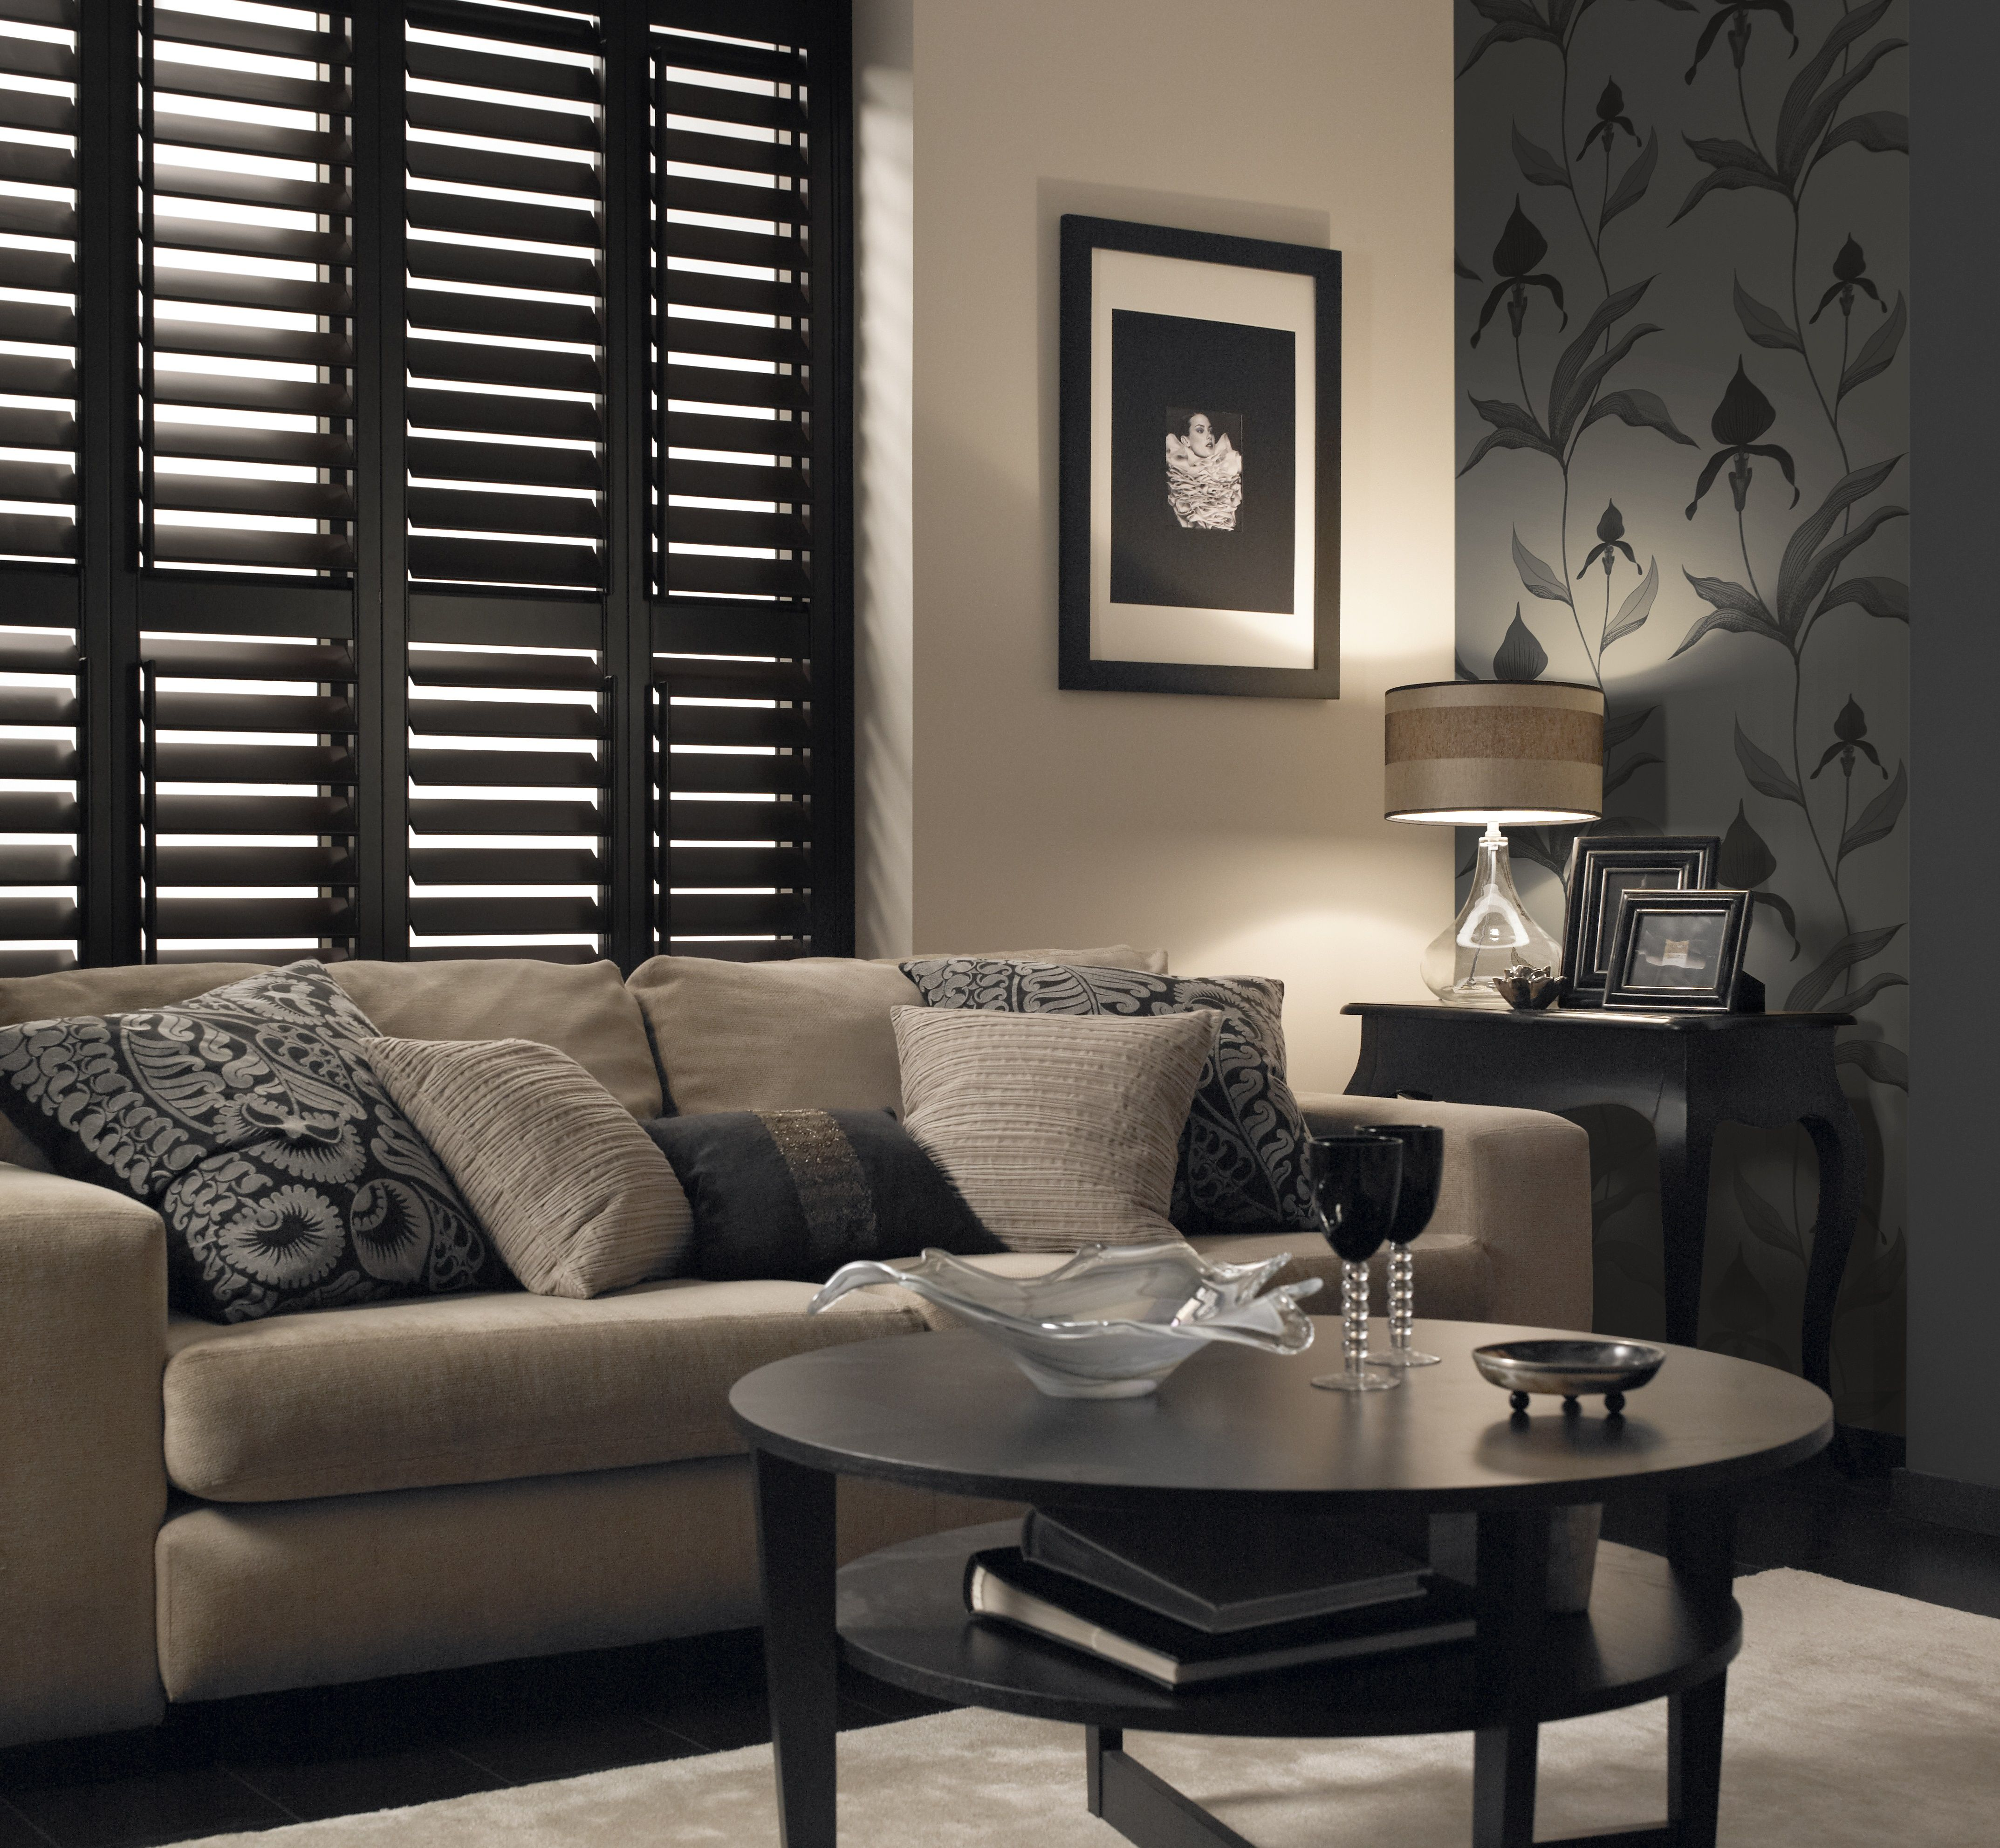 Pin On Window Shutters #plantation #shutters #living #room